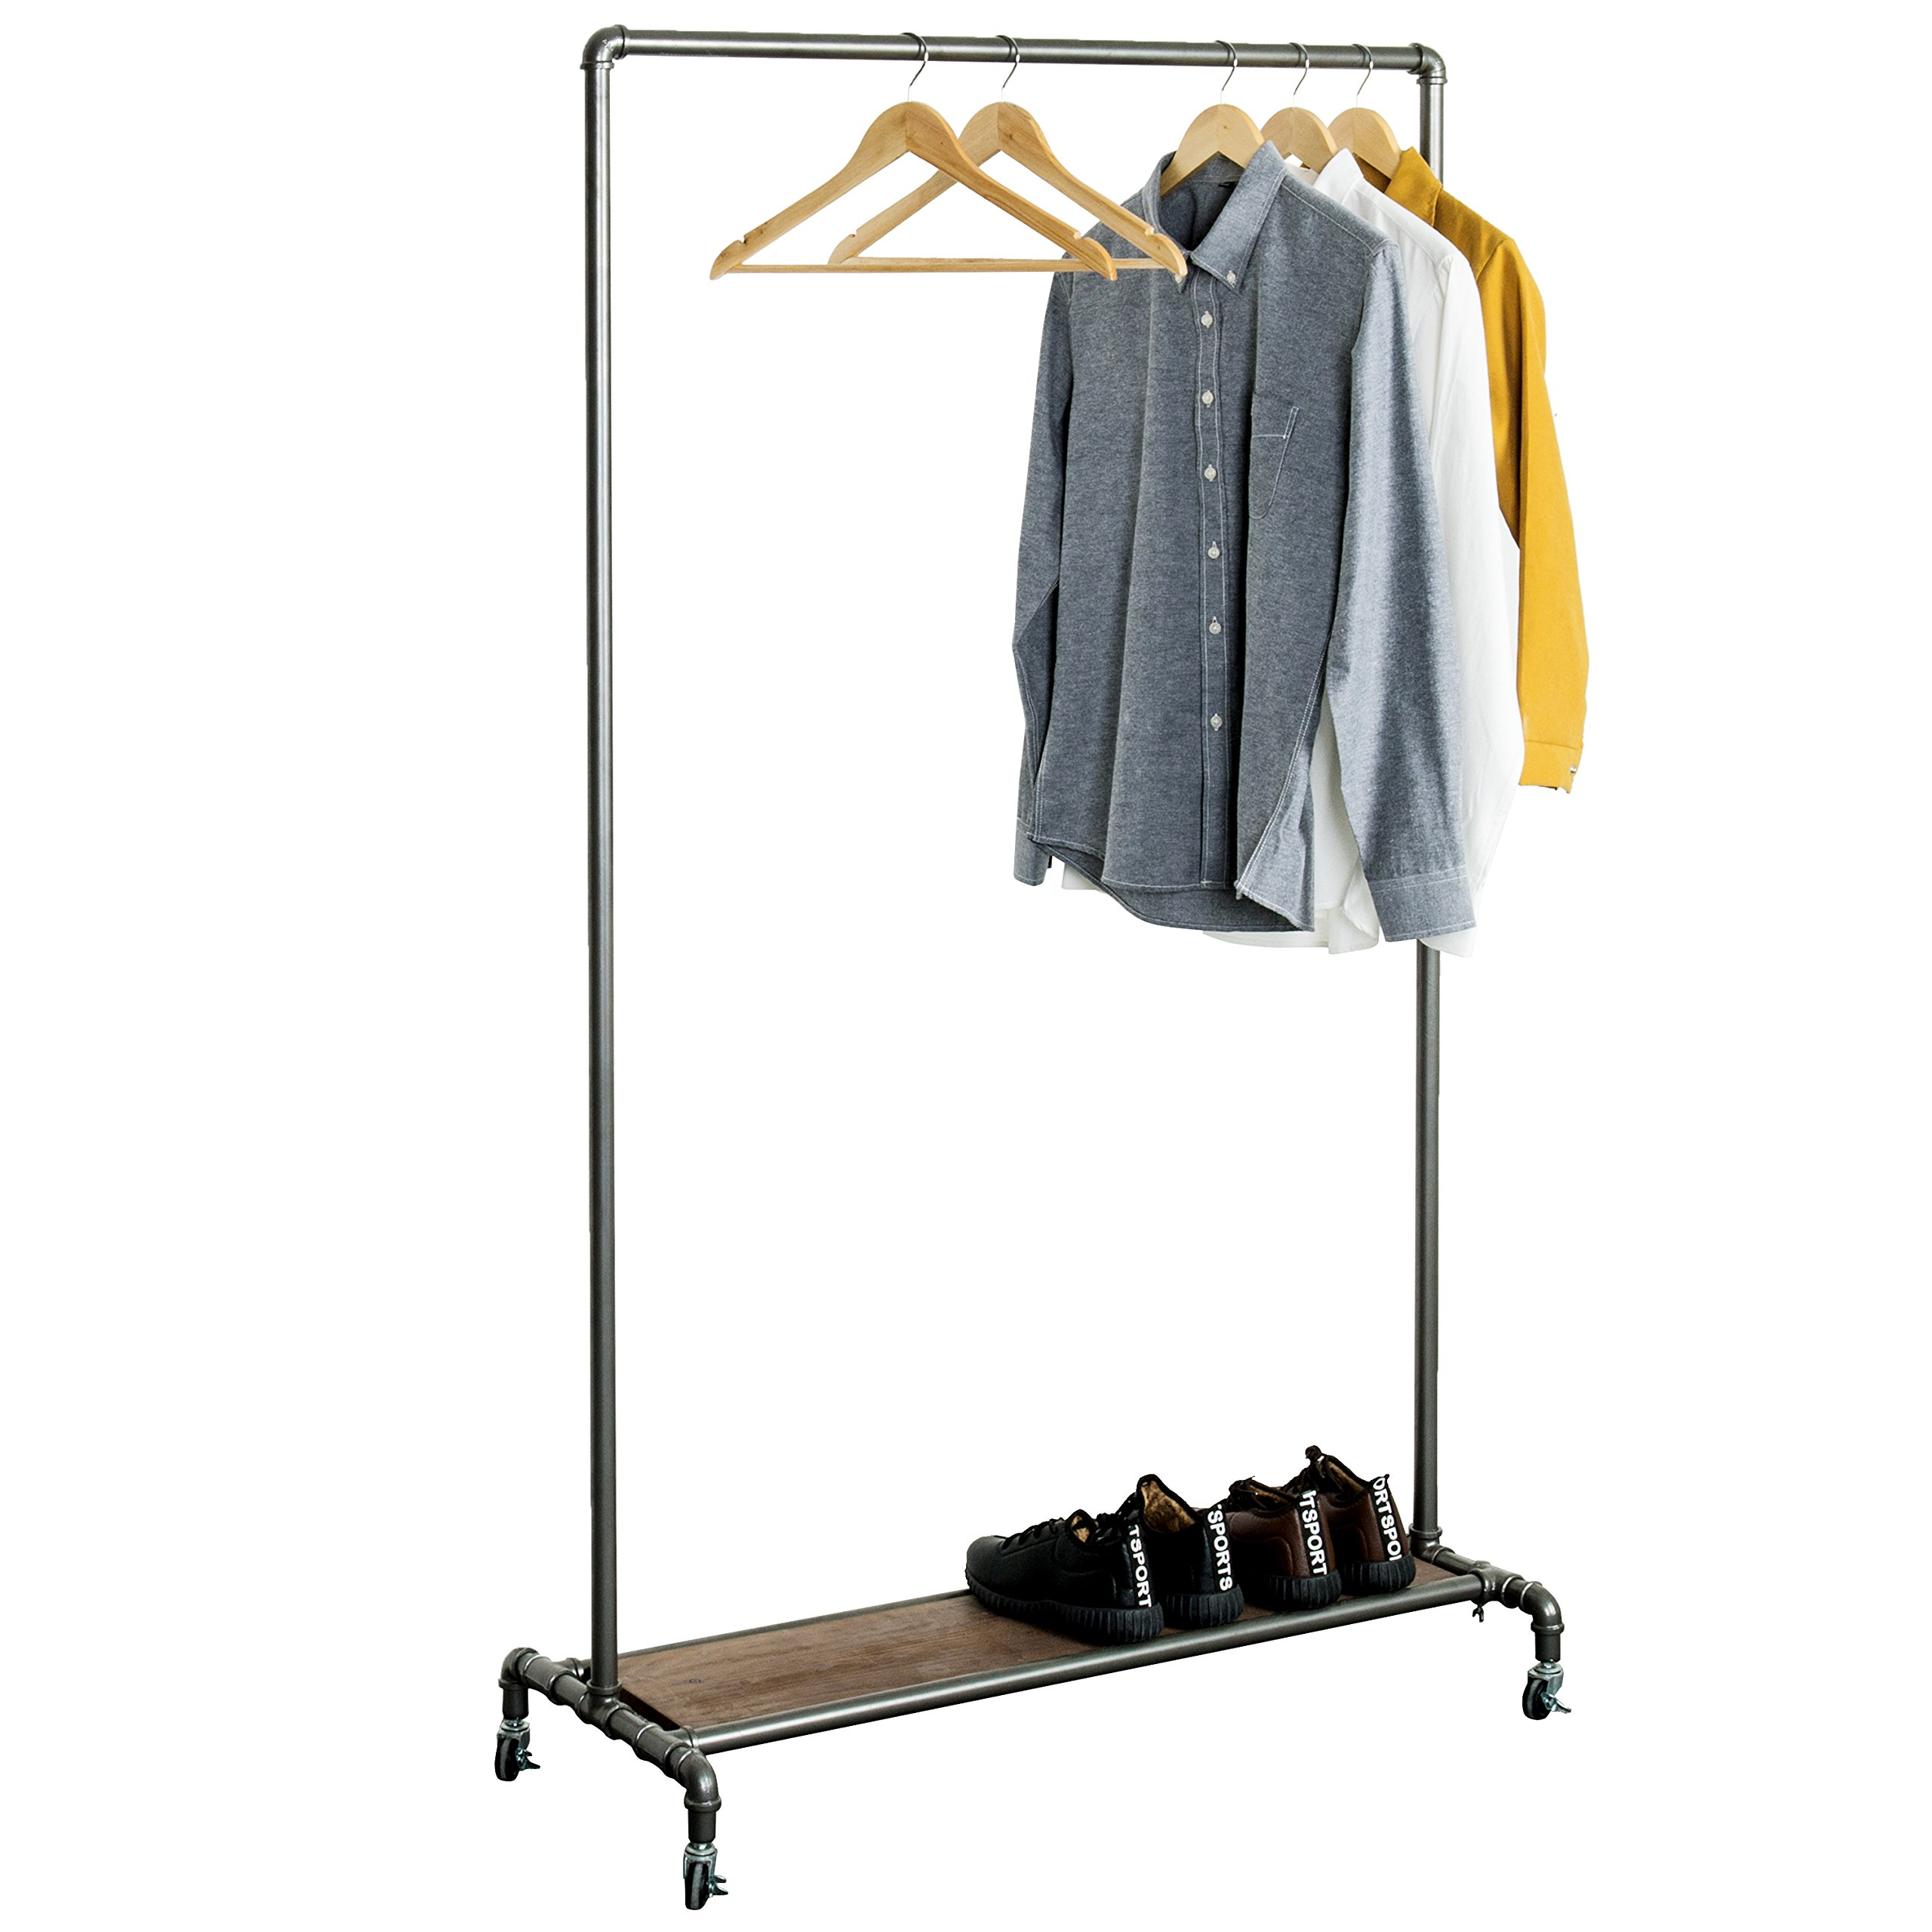 Industrial Style Metal Pipe Rolling Garment Rack with Wood Panel Storage Shelf & Caster Locking Wheels by MyGift